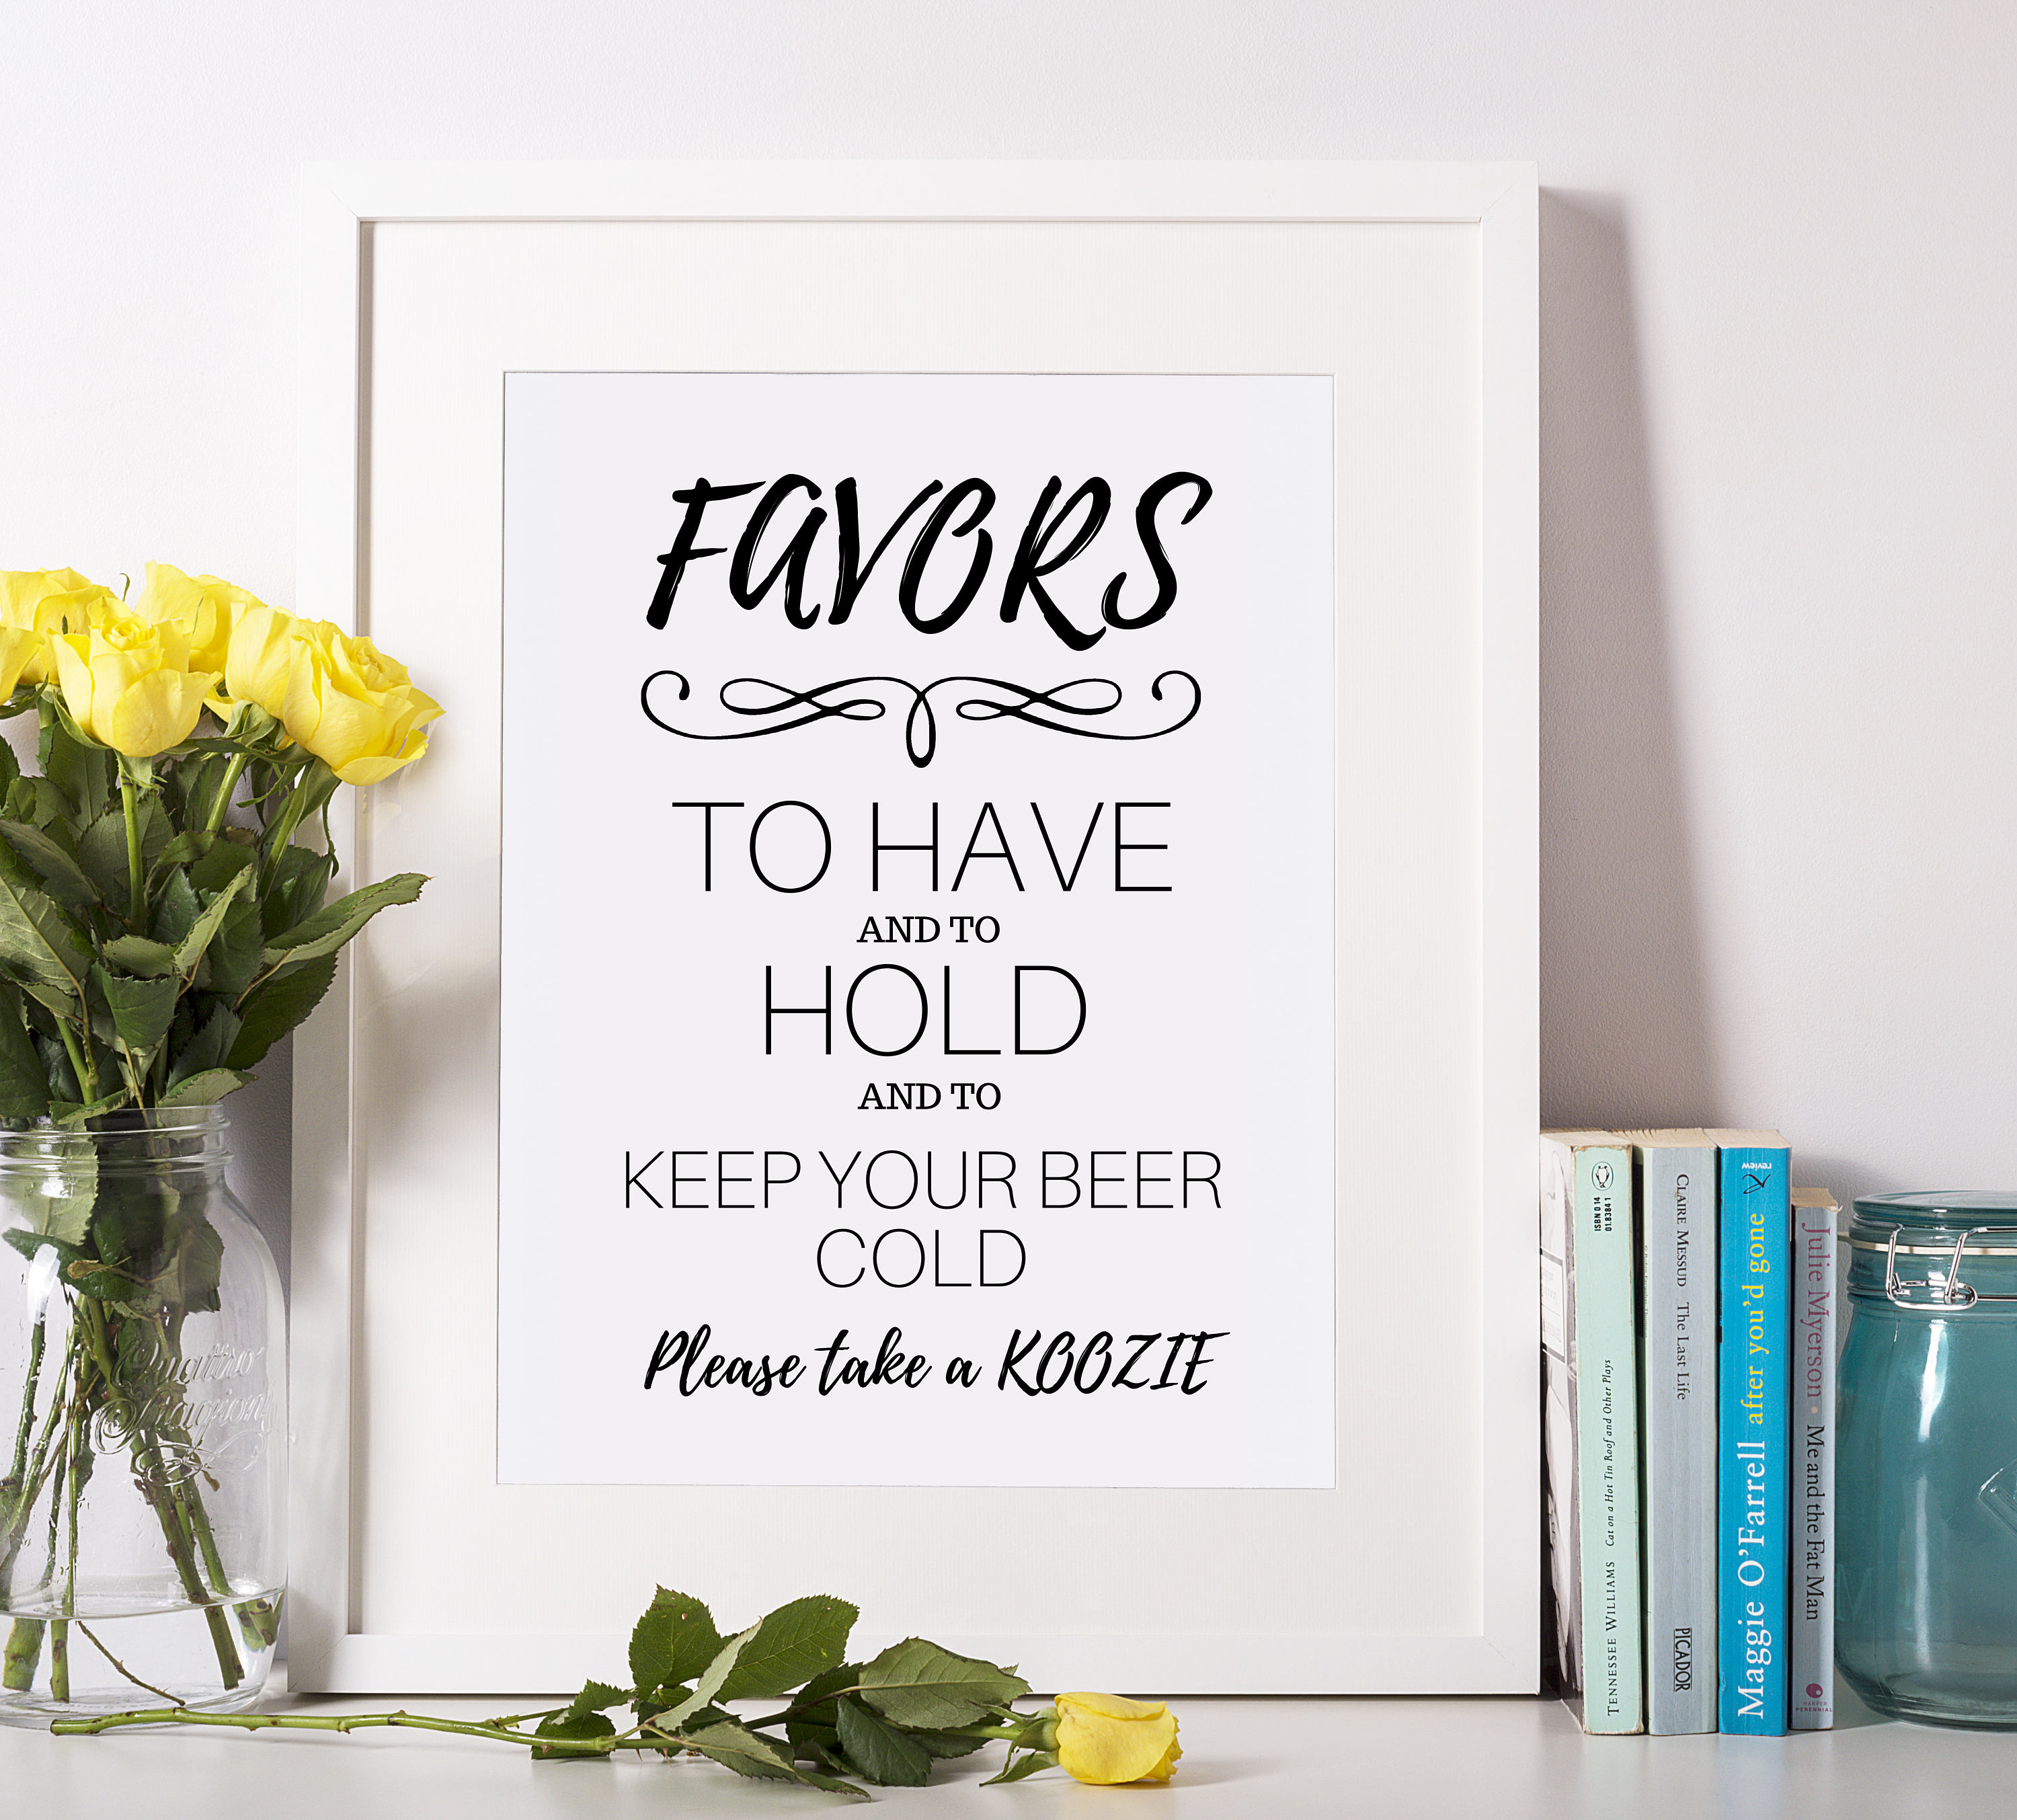 Take a Koozie Sign Wedding Koozie To Have and to Hold Your